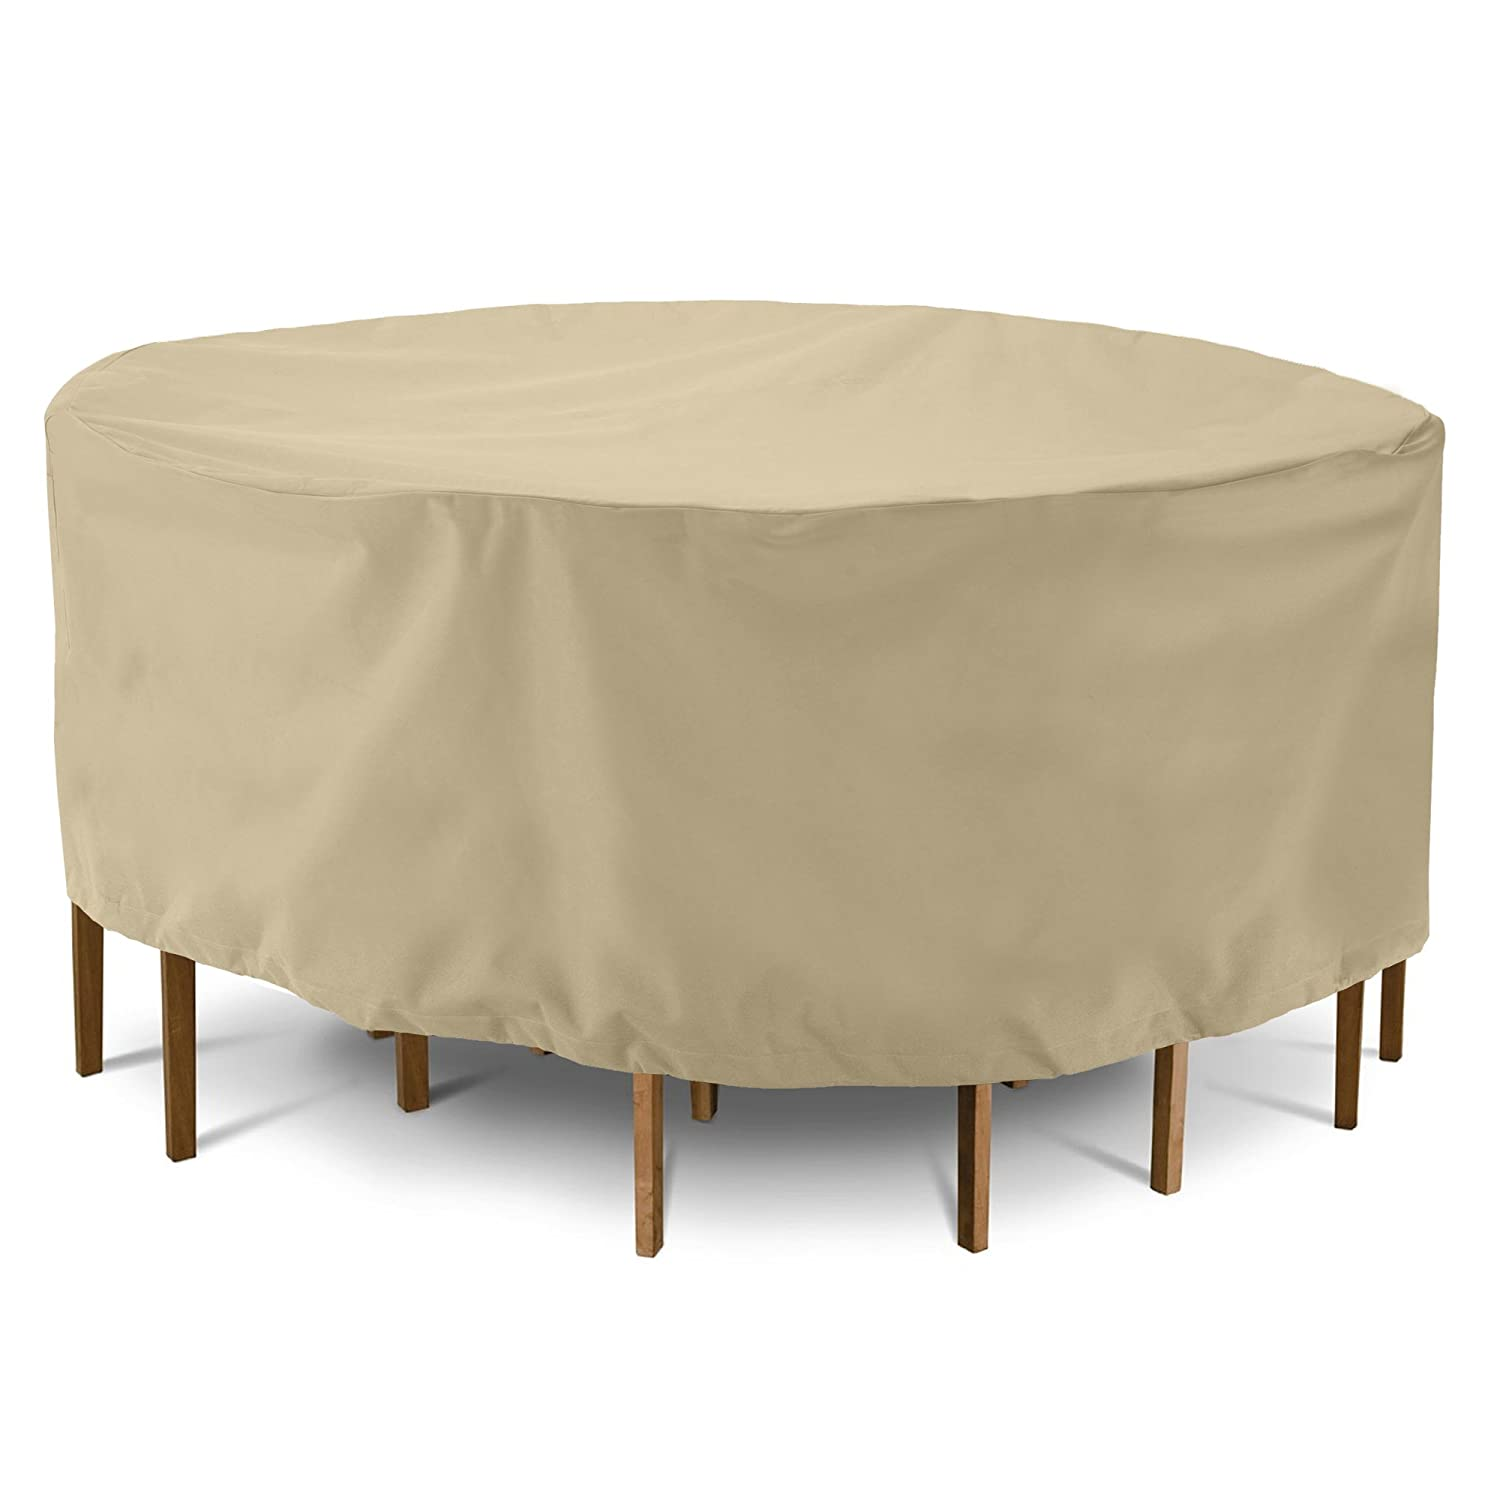 Waterproof Patio Round Furniture Set Cover 72 Dia x 30 H SunPatio Outdoor Table and Chair Cover All Weather Protection Heavy Duty Dining Table Set Cover Beige